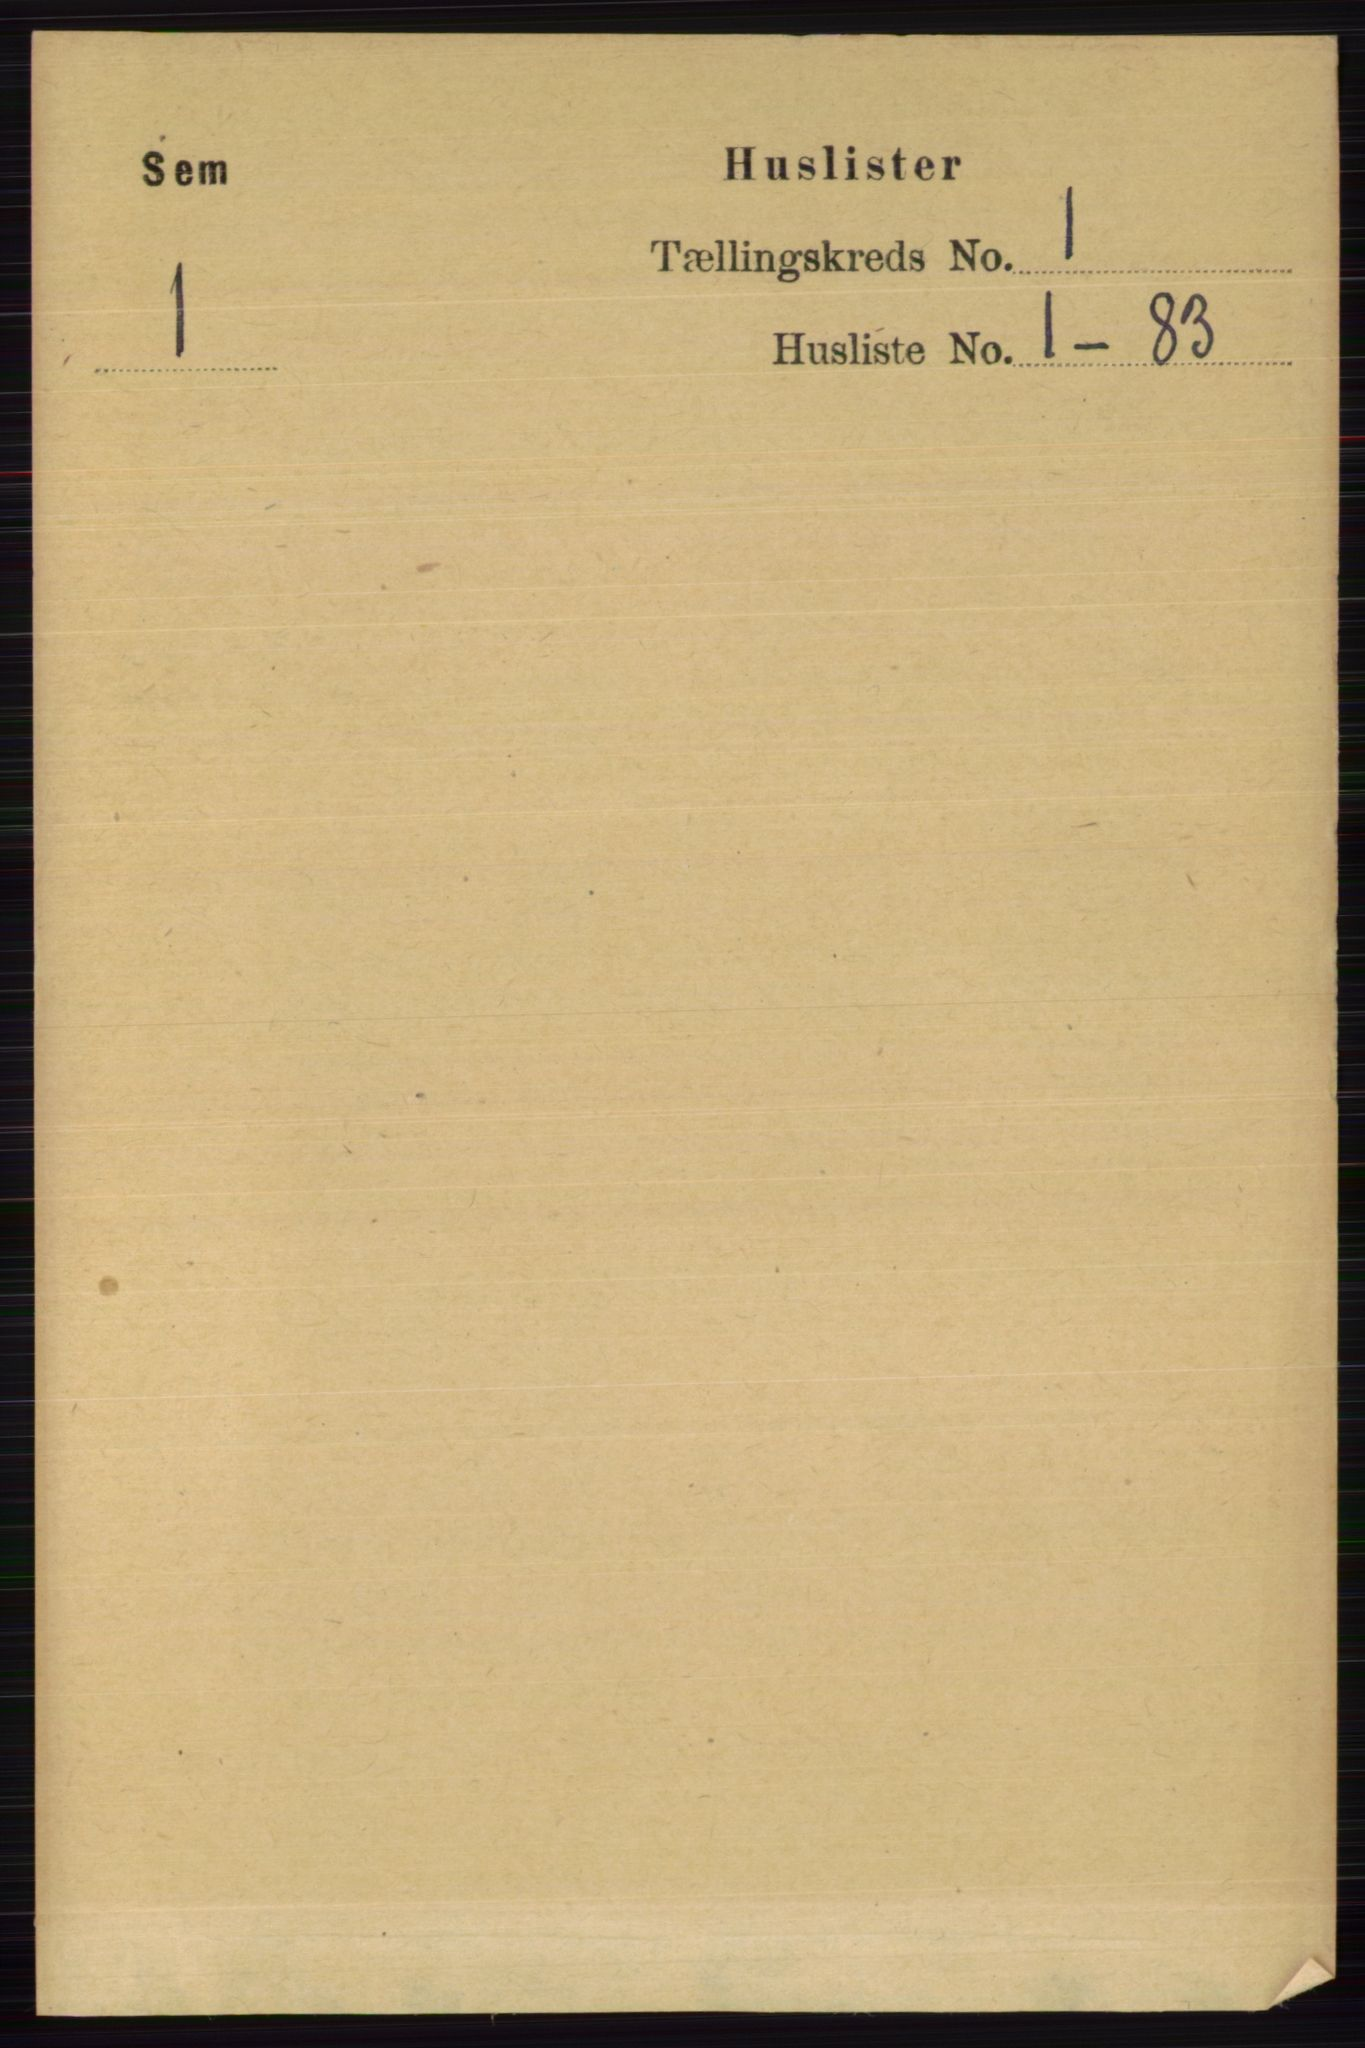 RA, Folketelling 1891 for 0721 Sem herred, 1891, s. 33